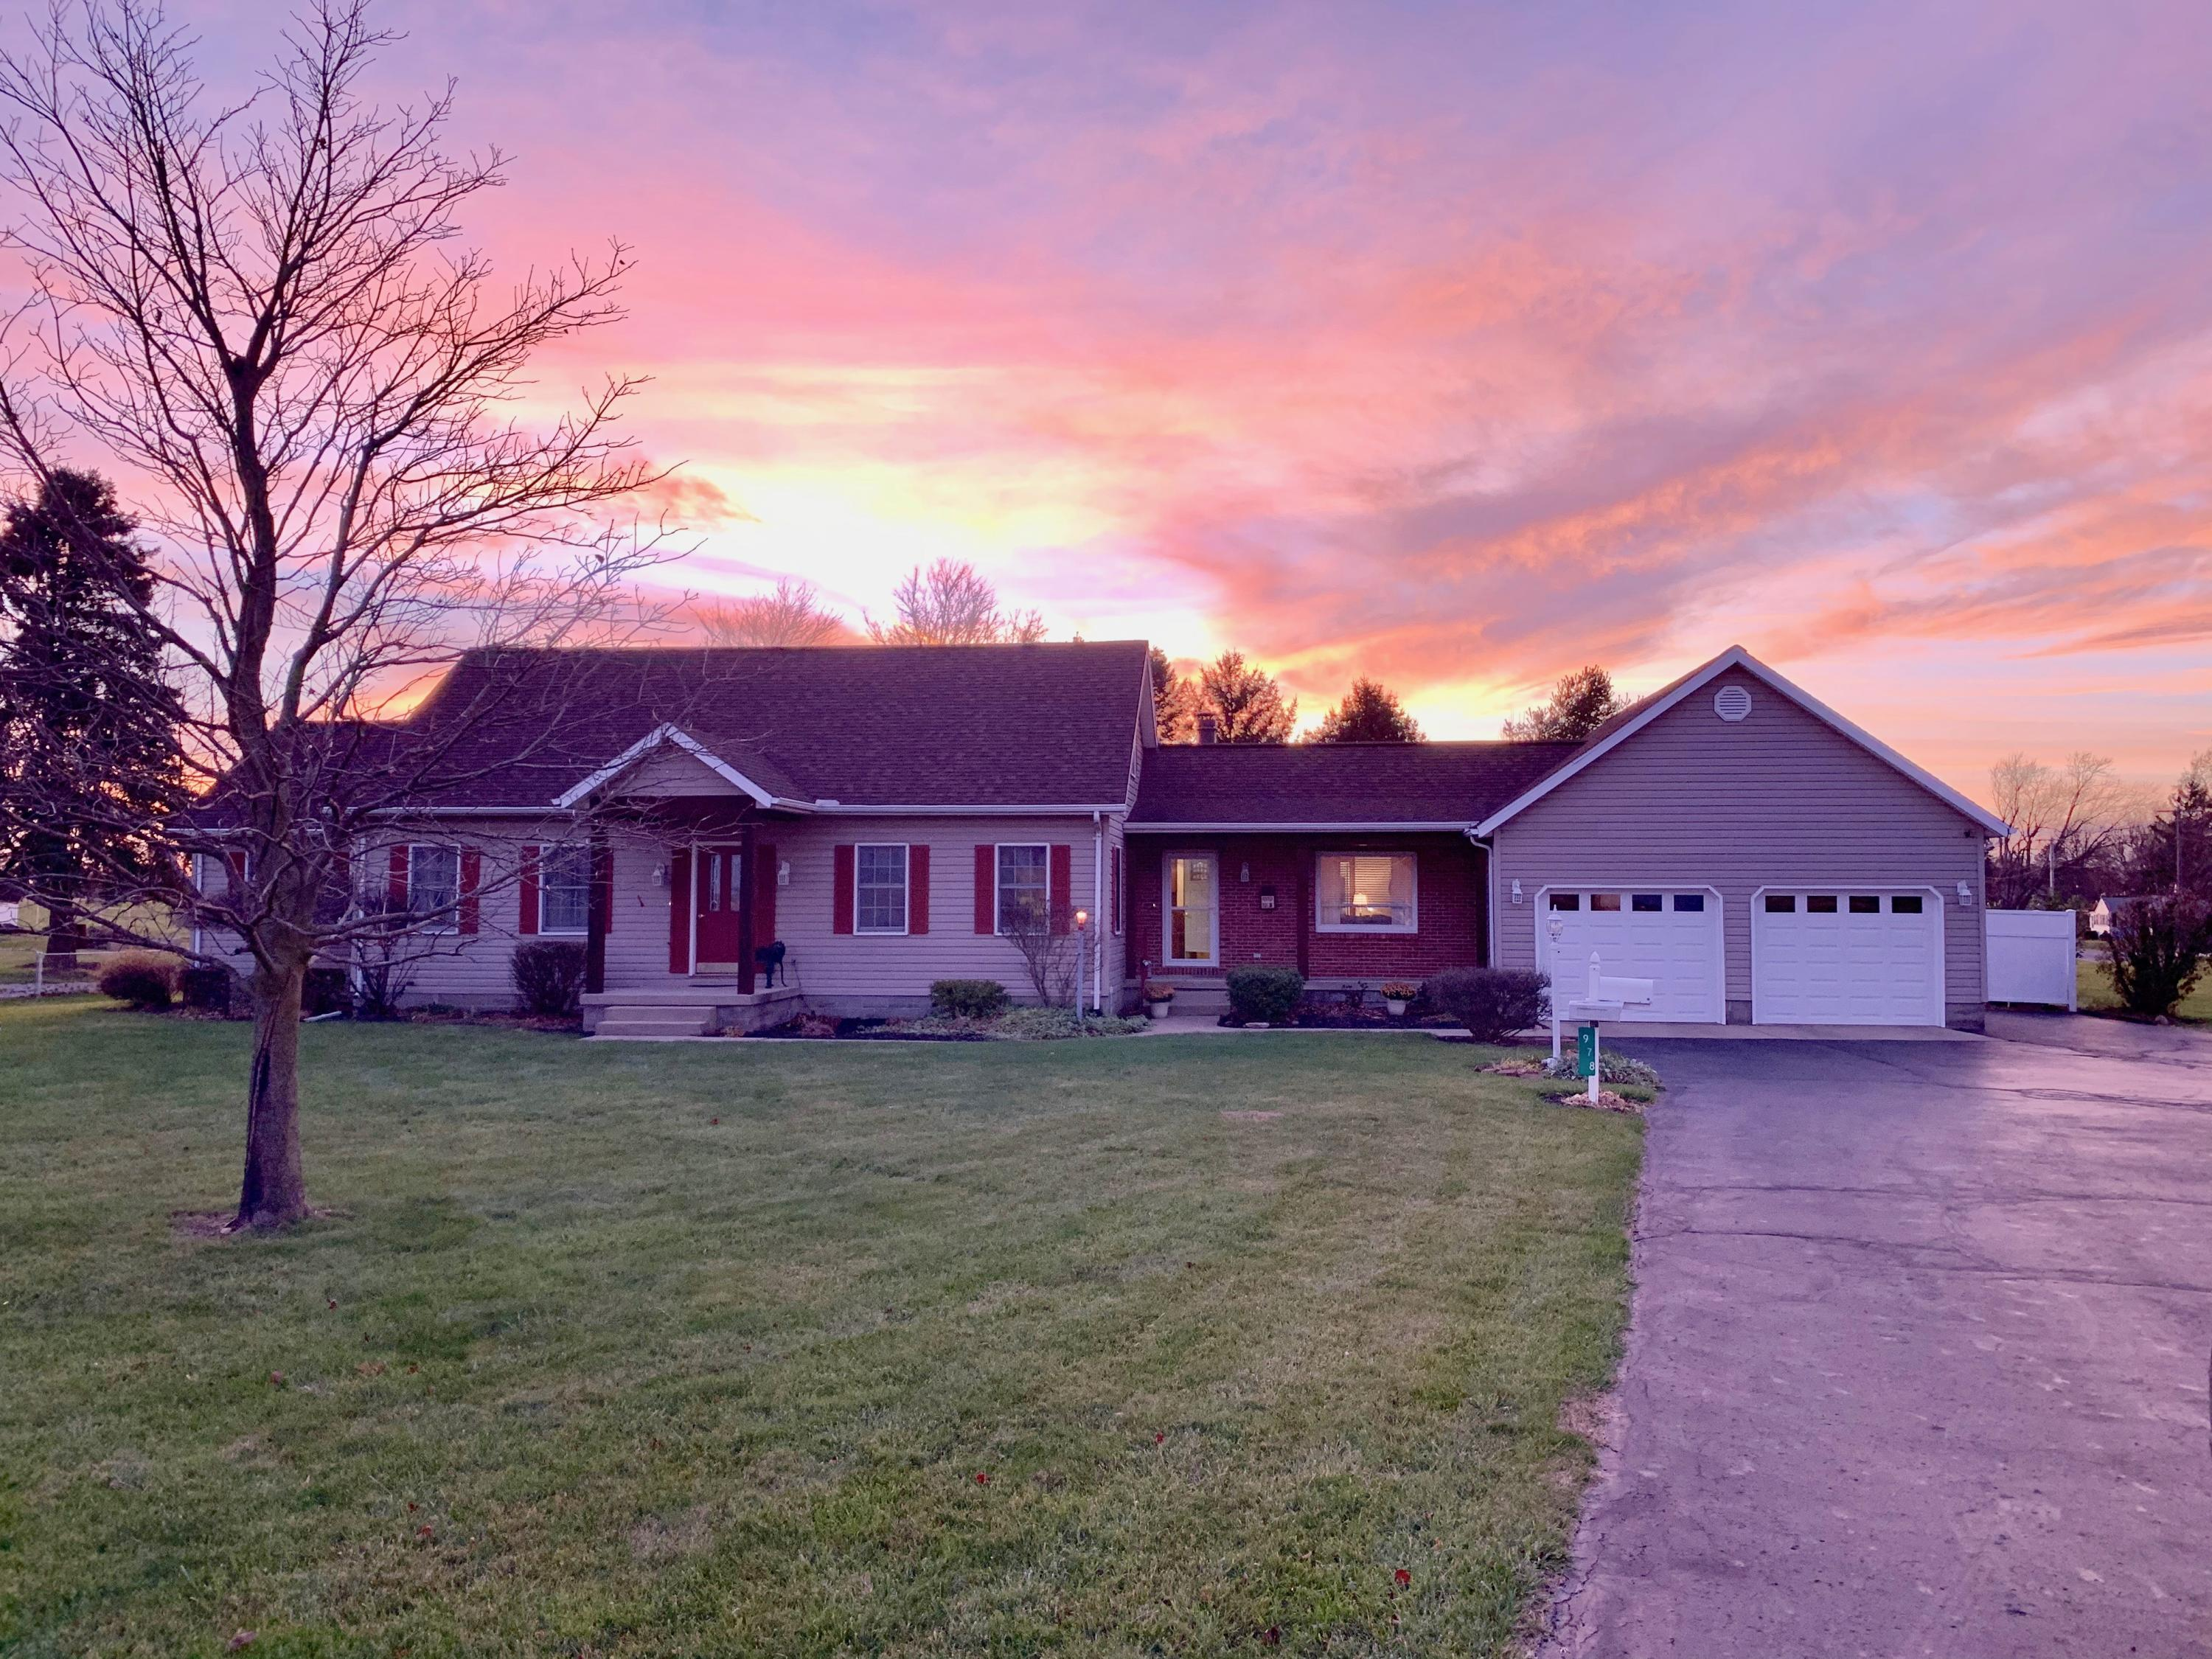 978 N Dugan Road Property Photo - Urbana, OH real estate listing